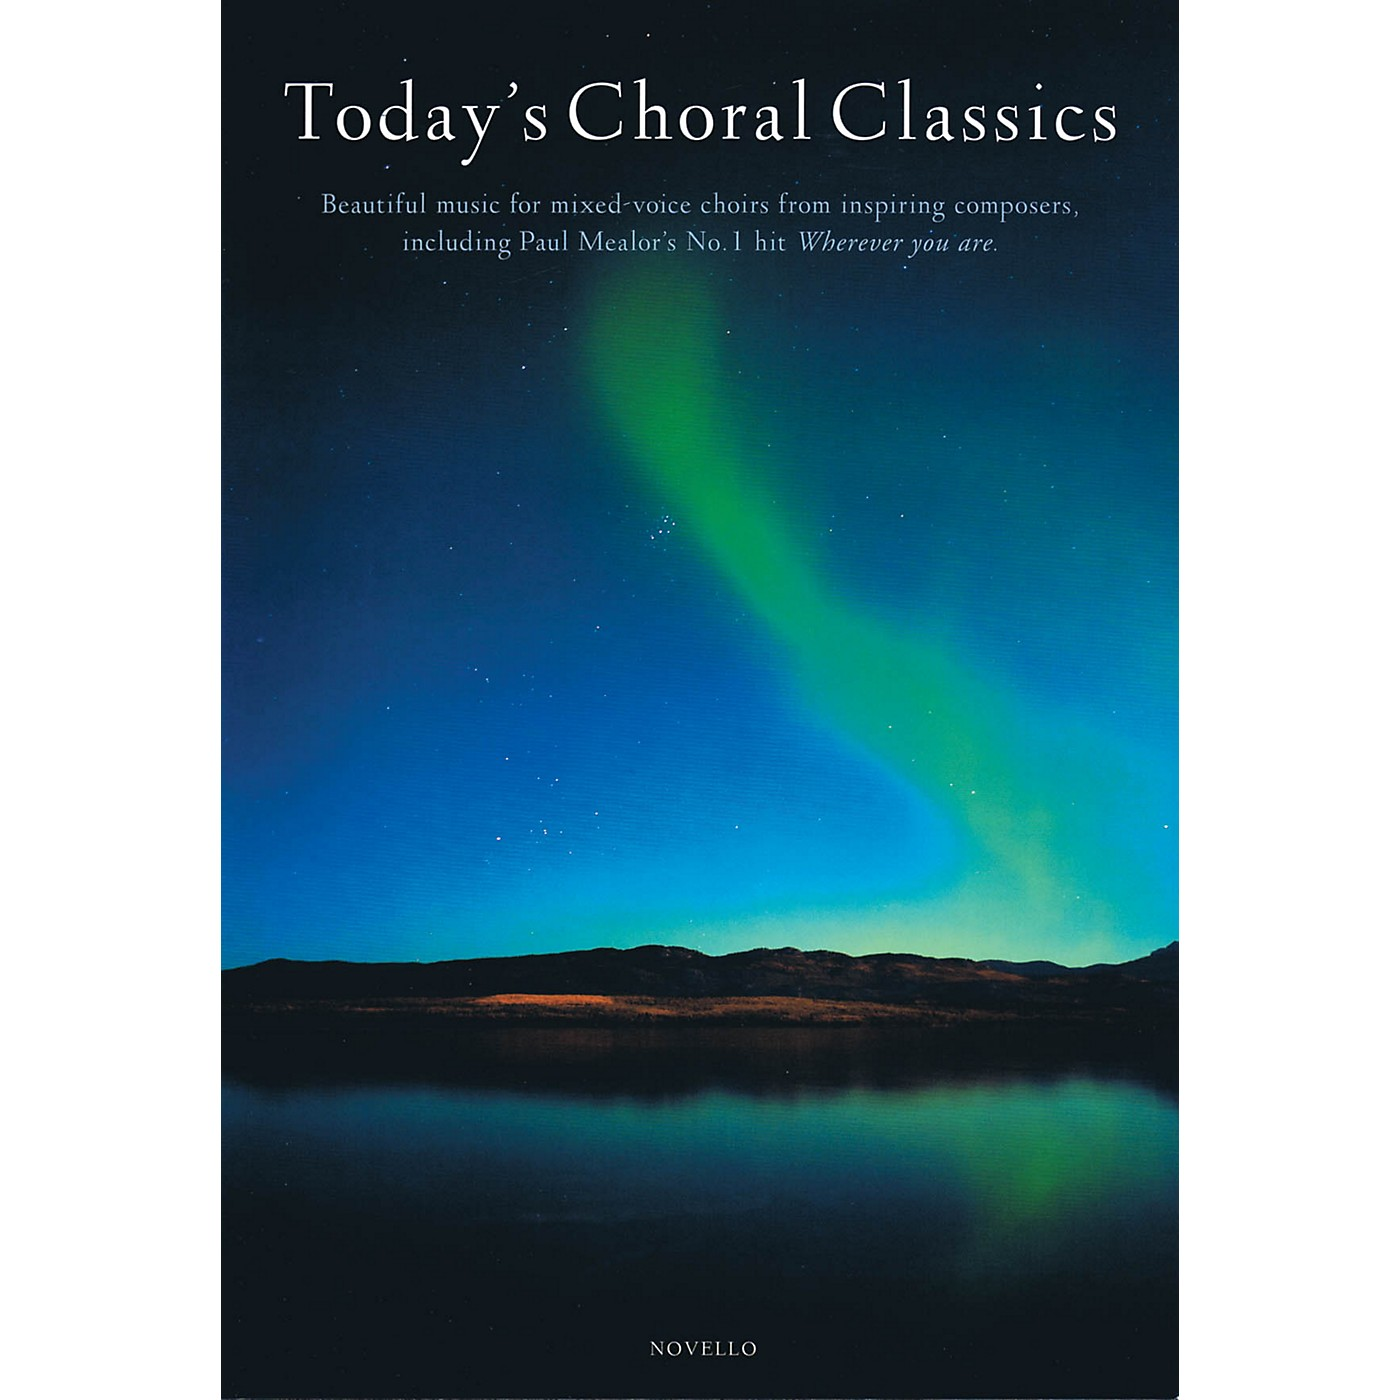 Novello Today's Choral Classics (Beautiful Music for Mixed-Voice Choirs from Inspiring Composers) thumbnail